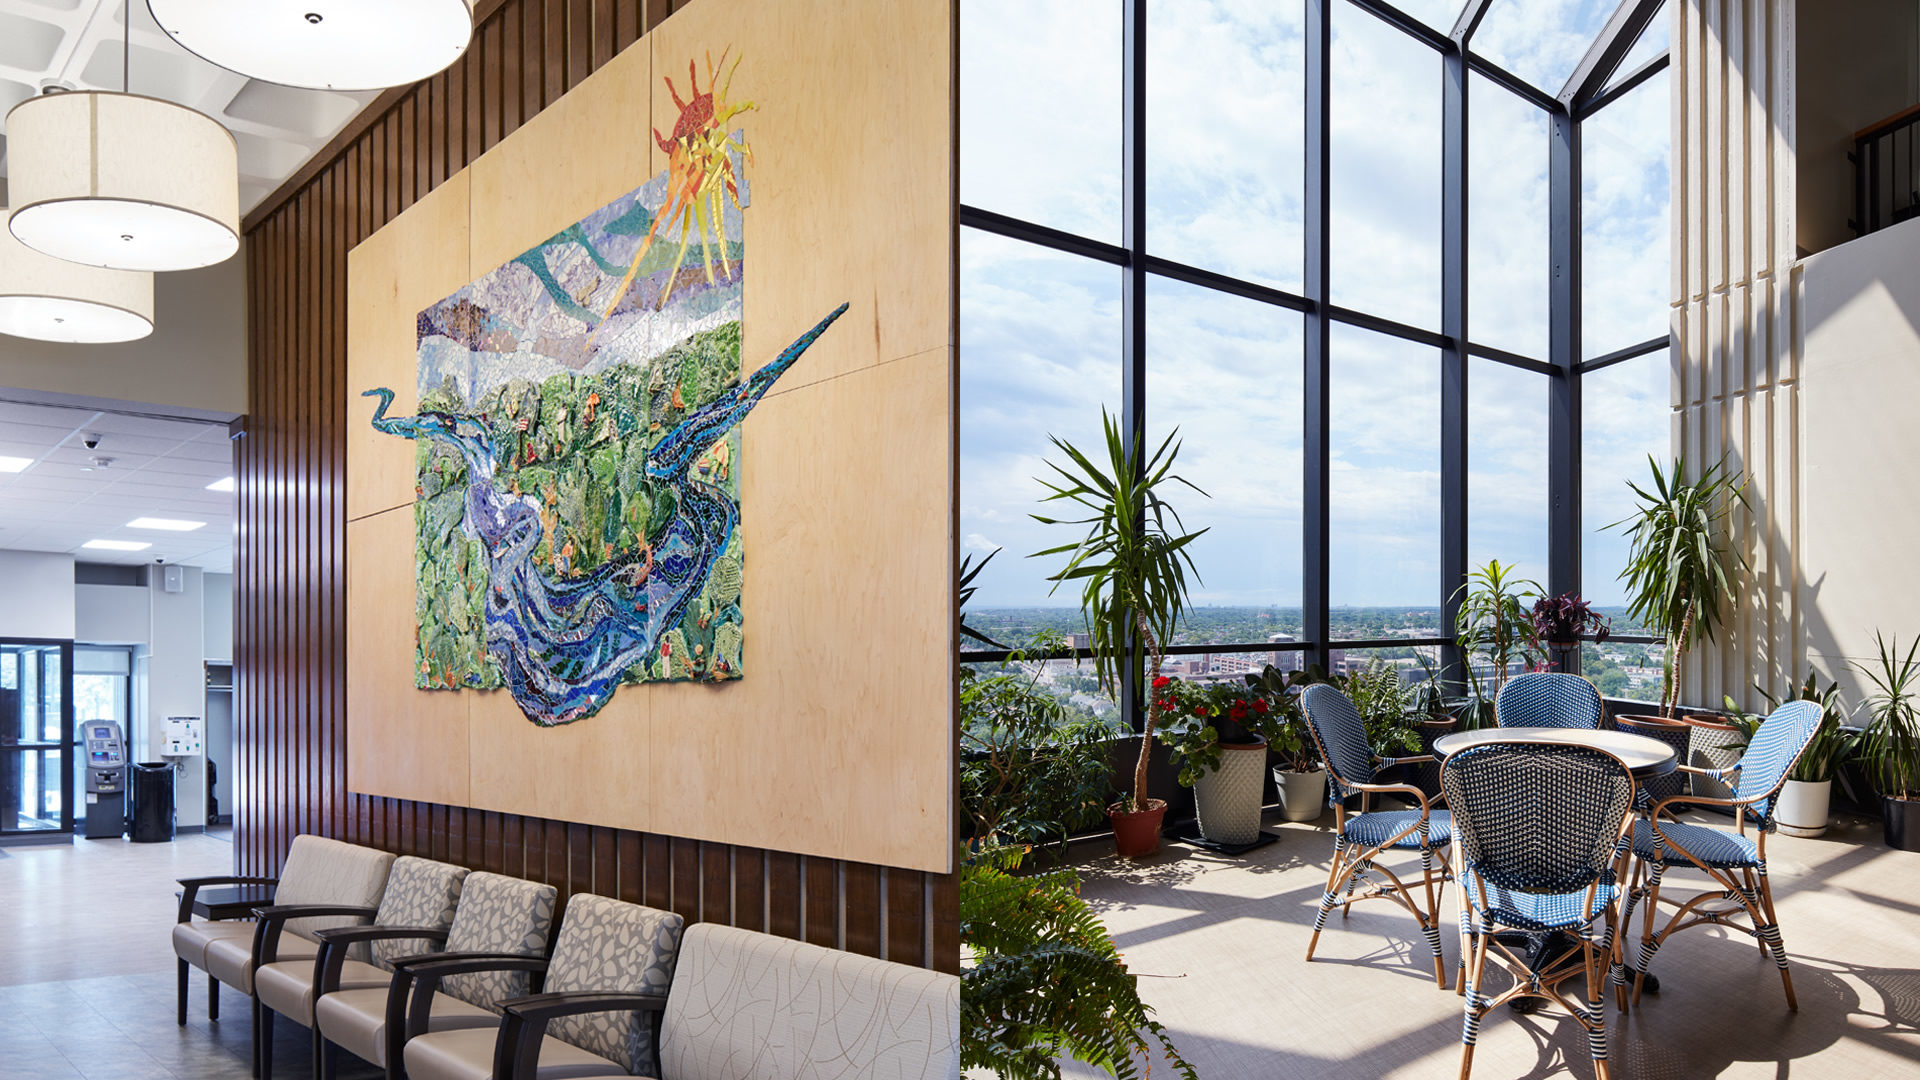 Ebenezer Tower Apartments Interior Green House SItting Area with Floor to Ceiling Windows and Interior Lobby Seating Area